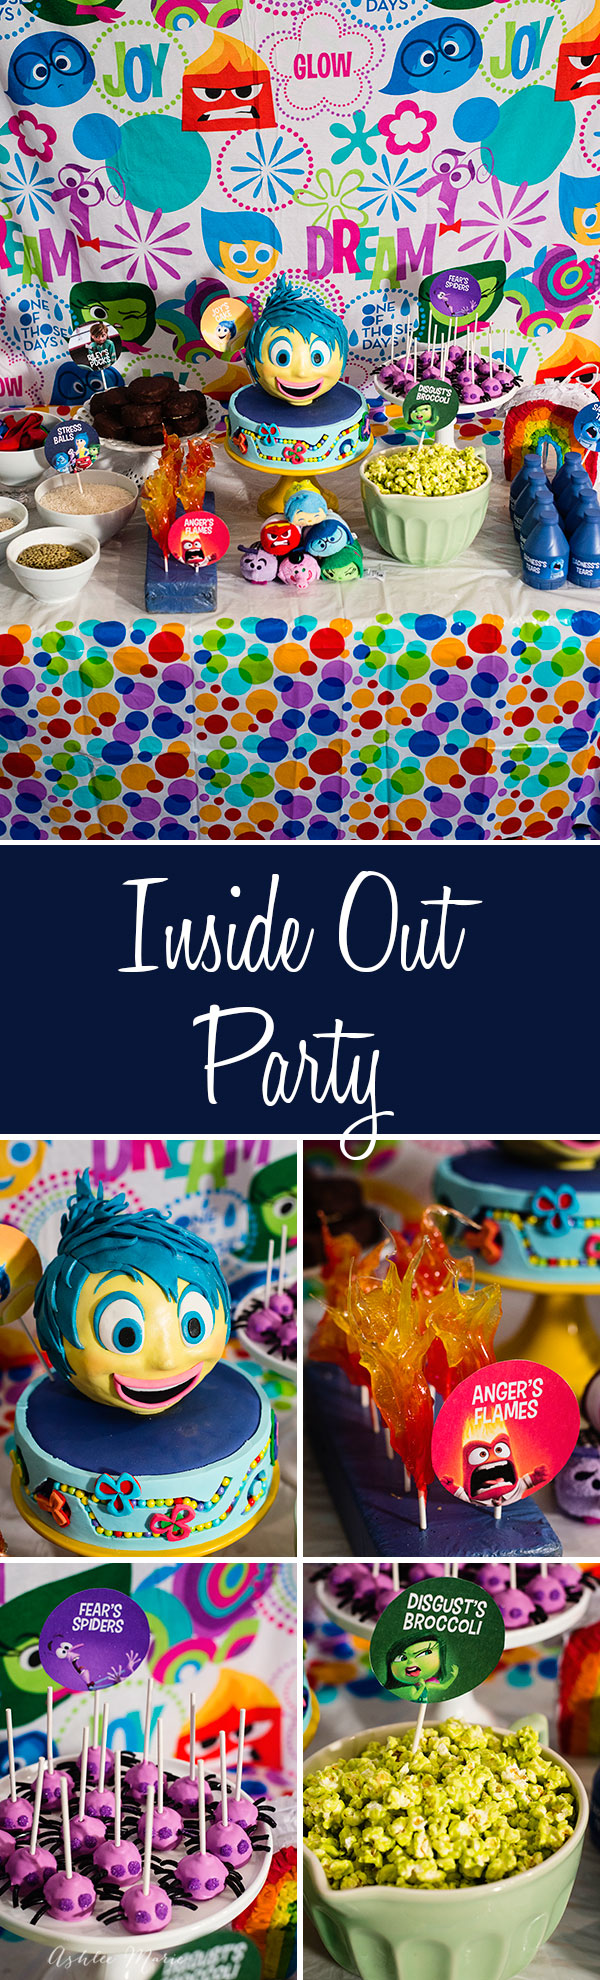 Everyone loves disney's Inside Out Movie, and now you can throw the perfect party or family movie night